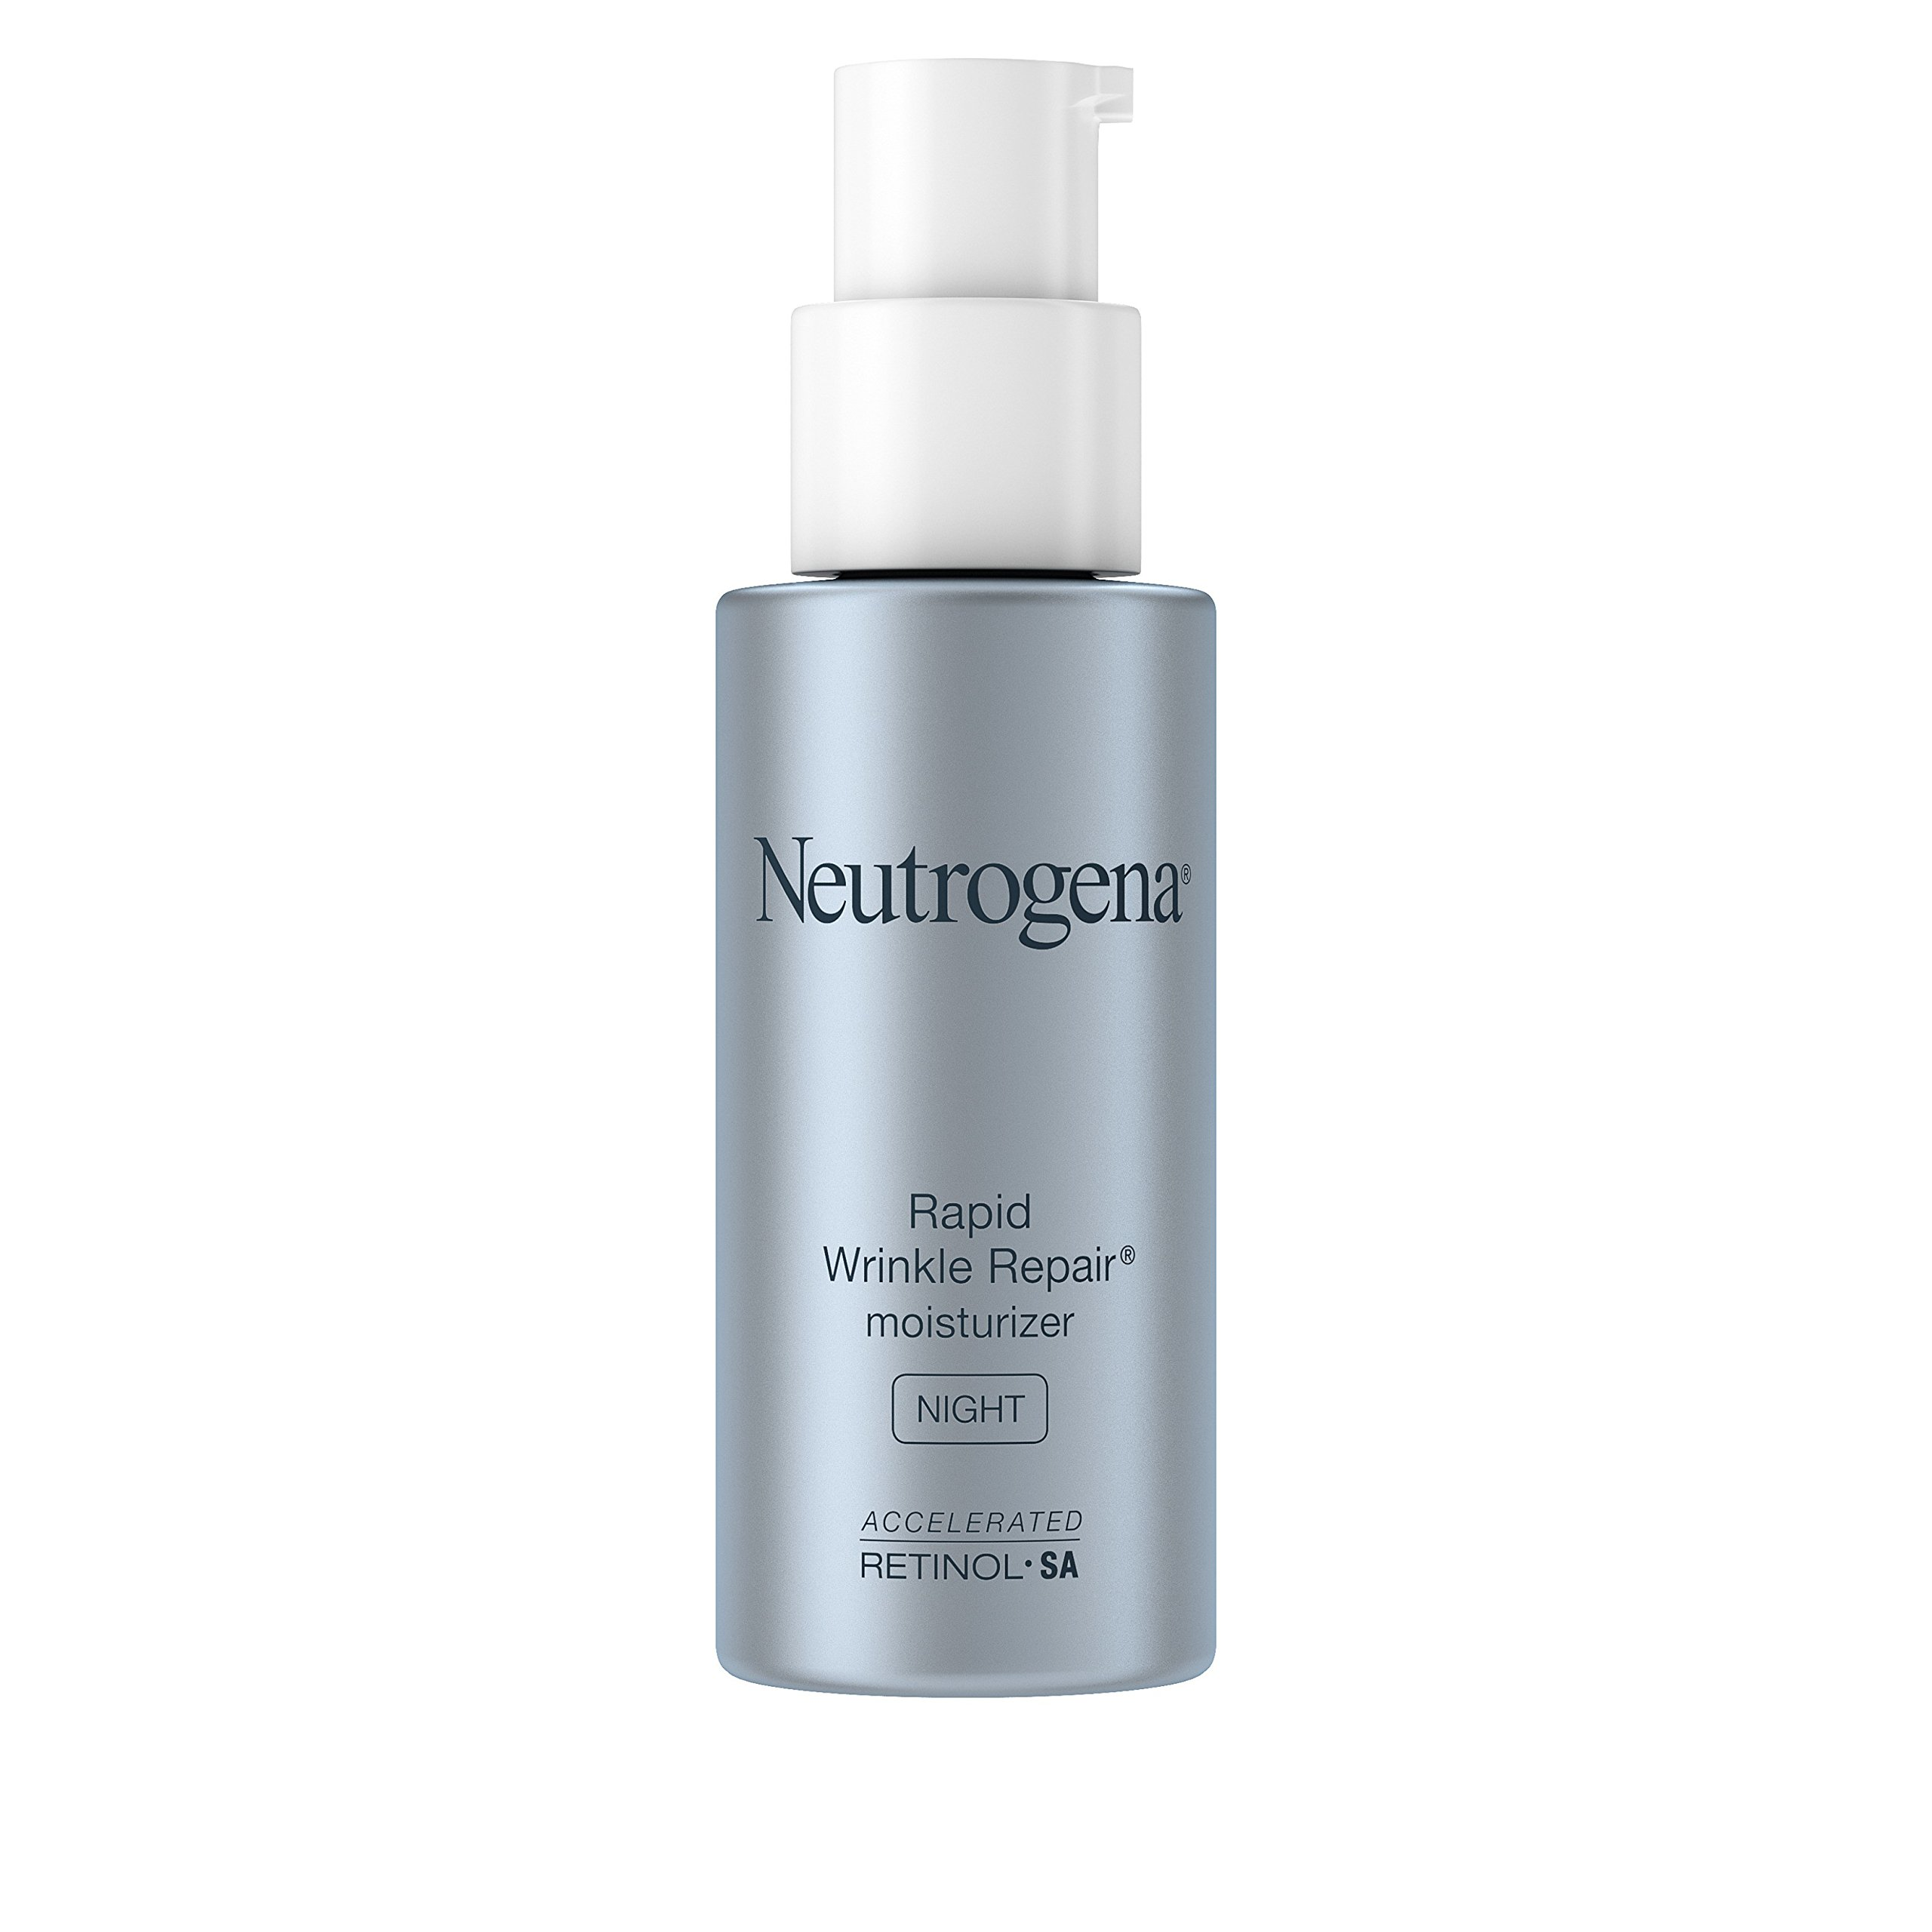 Neutrogena Rapid Wrinkle Repair Anti-Wrinkle Night Accelerated Retinol SA Facial Moisturizer, 1 fl. Oz